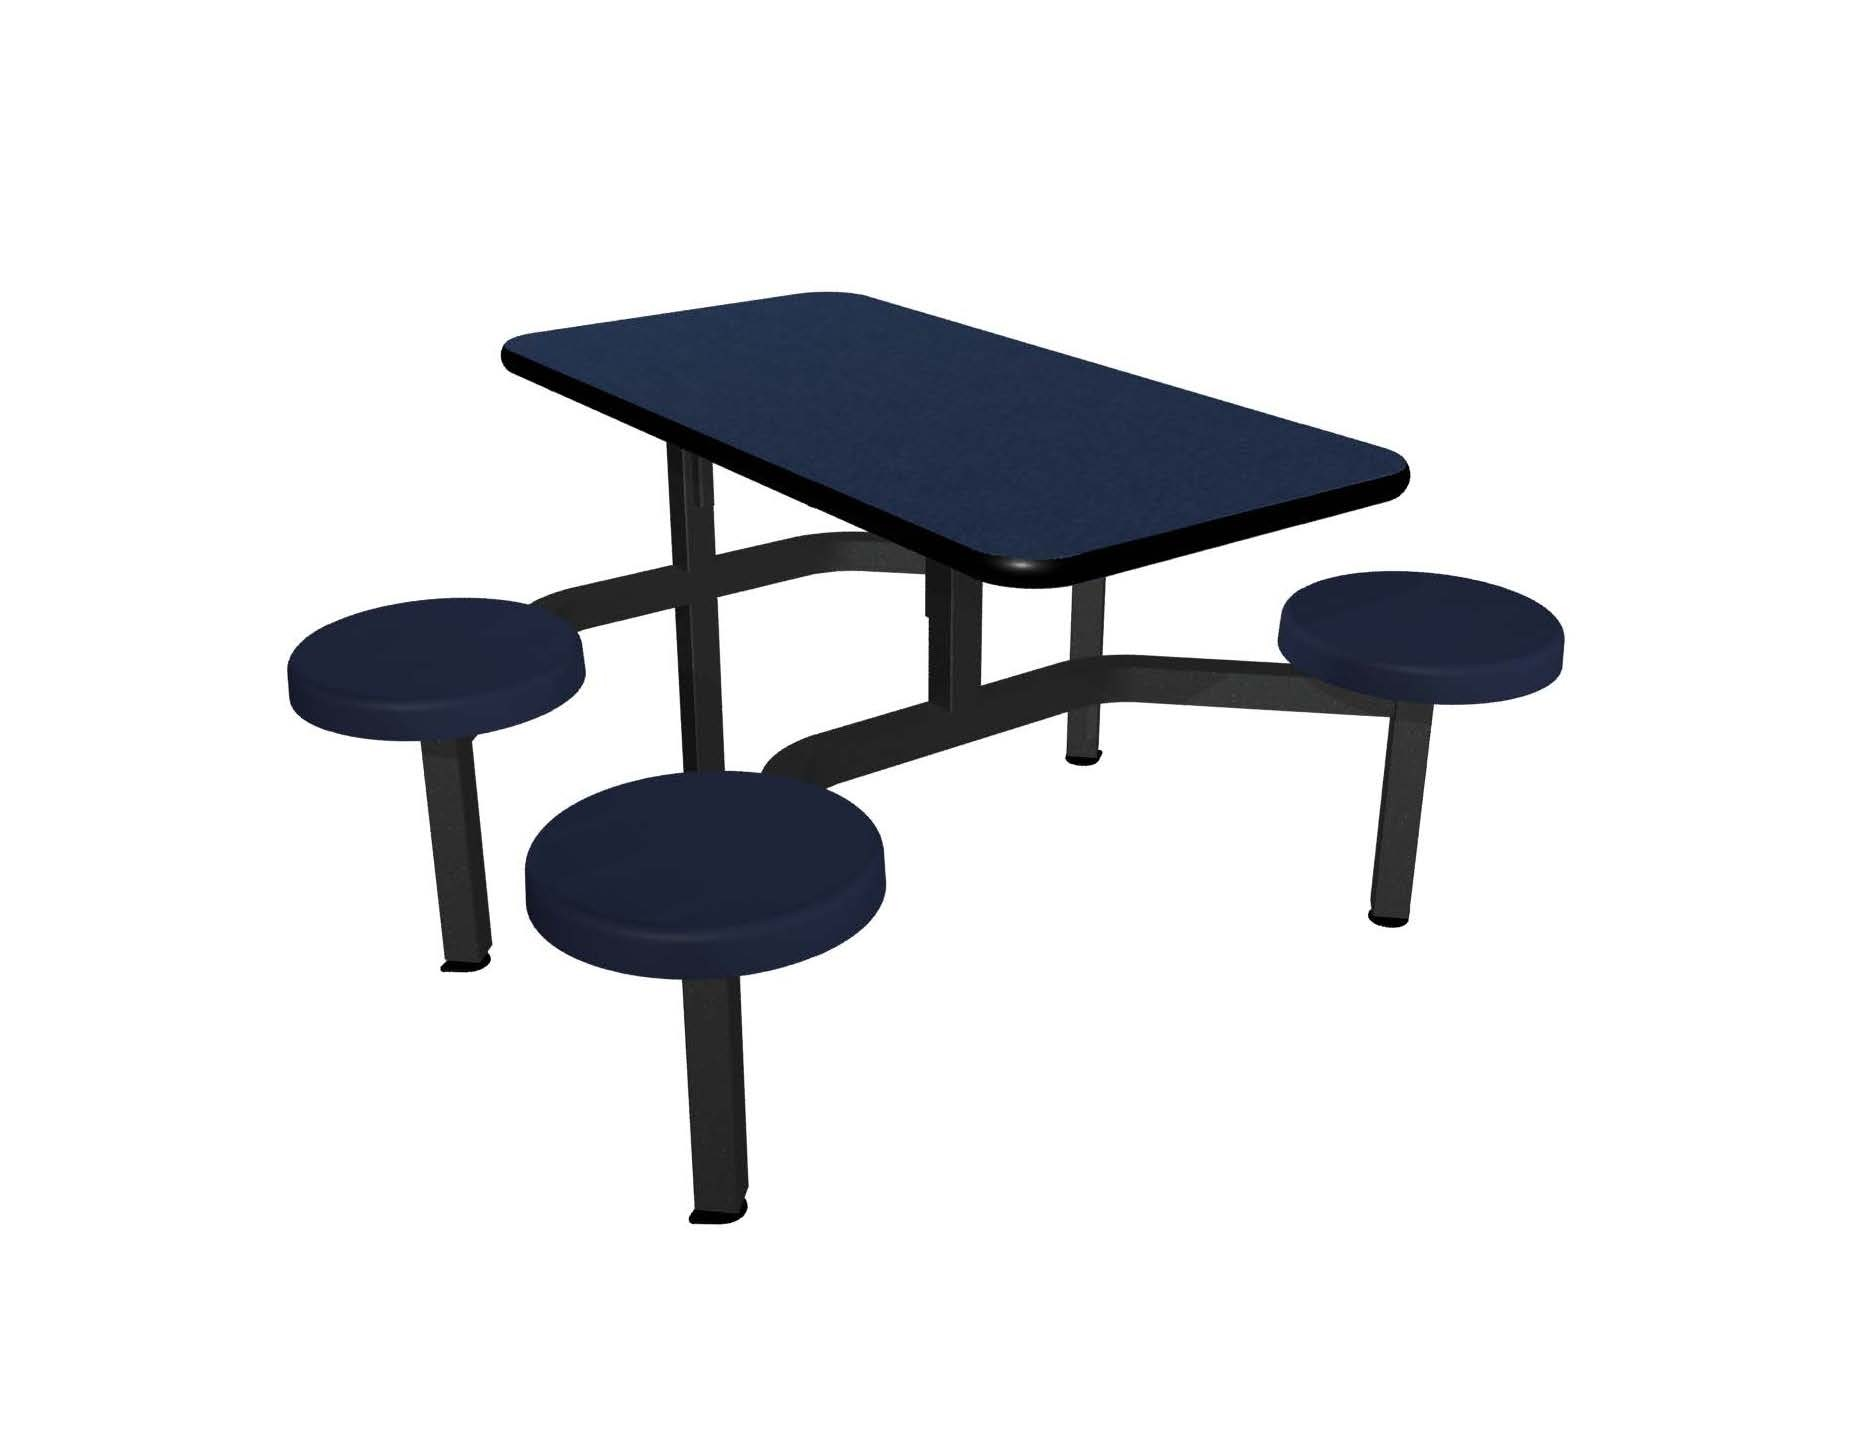 Navy Legacy laminate table top, Black Dur-A-Edge®, Composite button seat in Navy